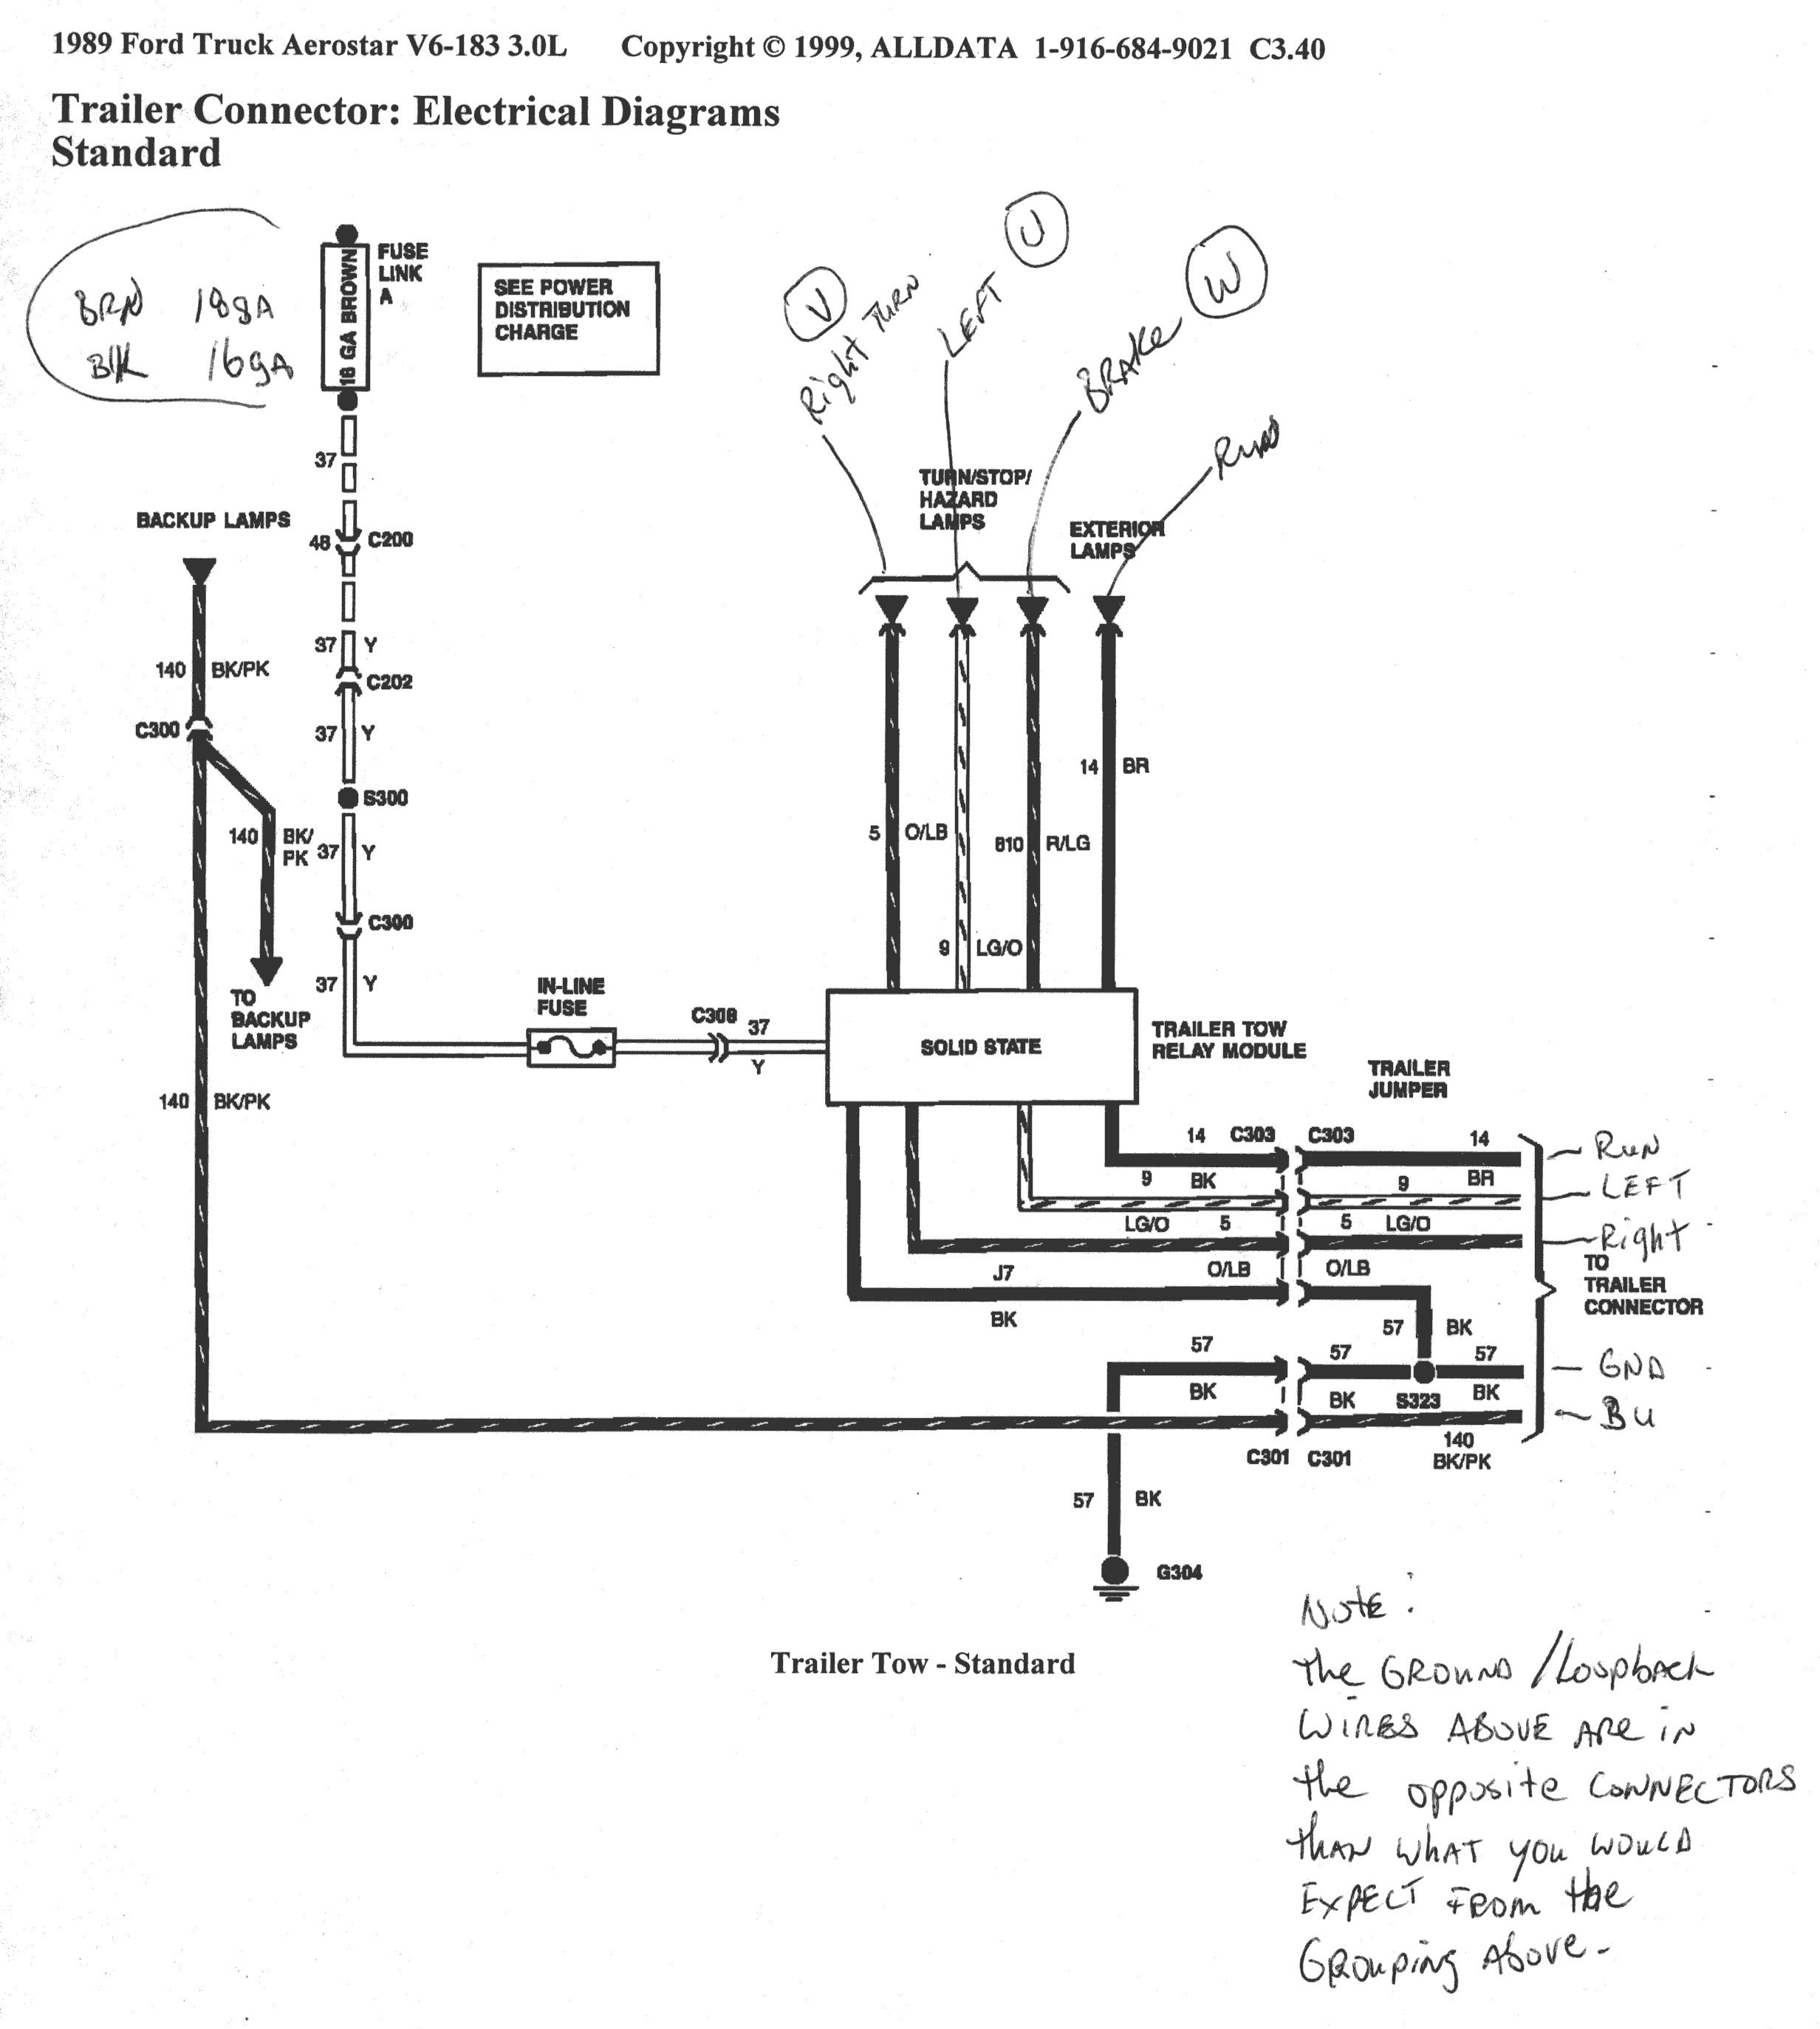 Ford Trailer Wiring Diagram 6 Pin - Mikulskilawoffices - 6 Prong Trailer Wiring Diagram